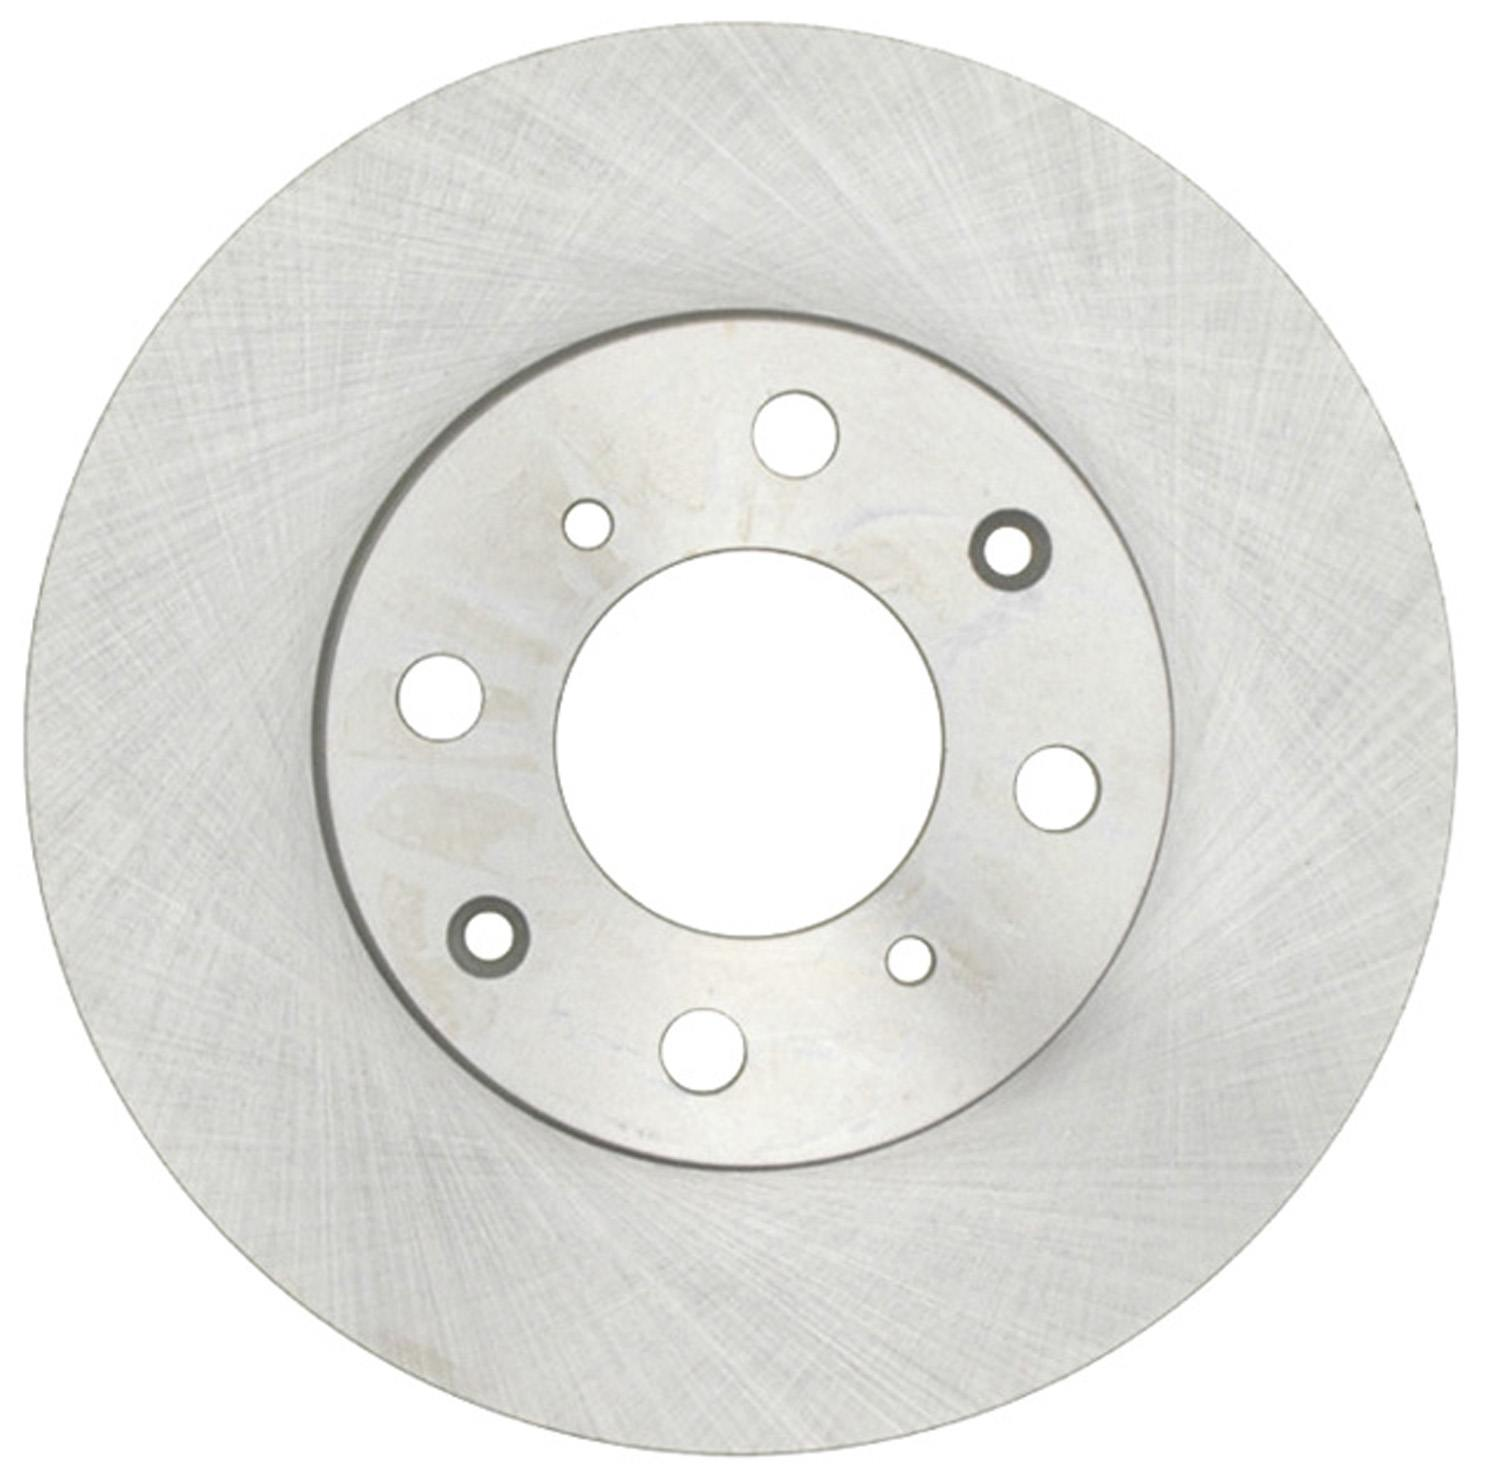 ACDELCO ADVANTAGE - Non-Coated Disc Brake Rotor - DCD 18A413A